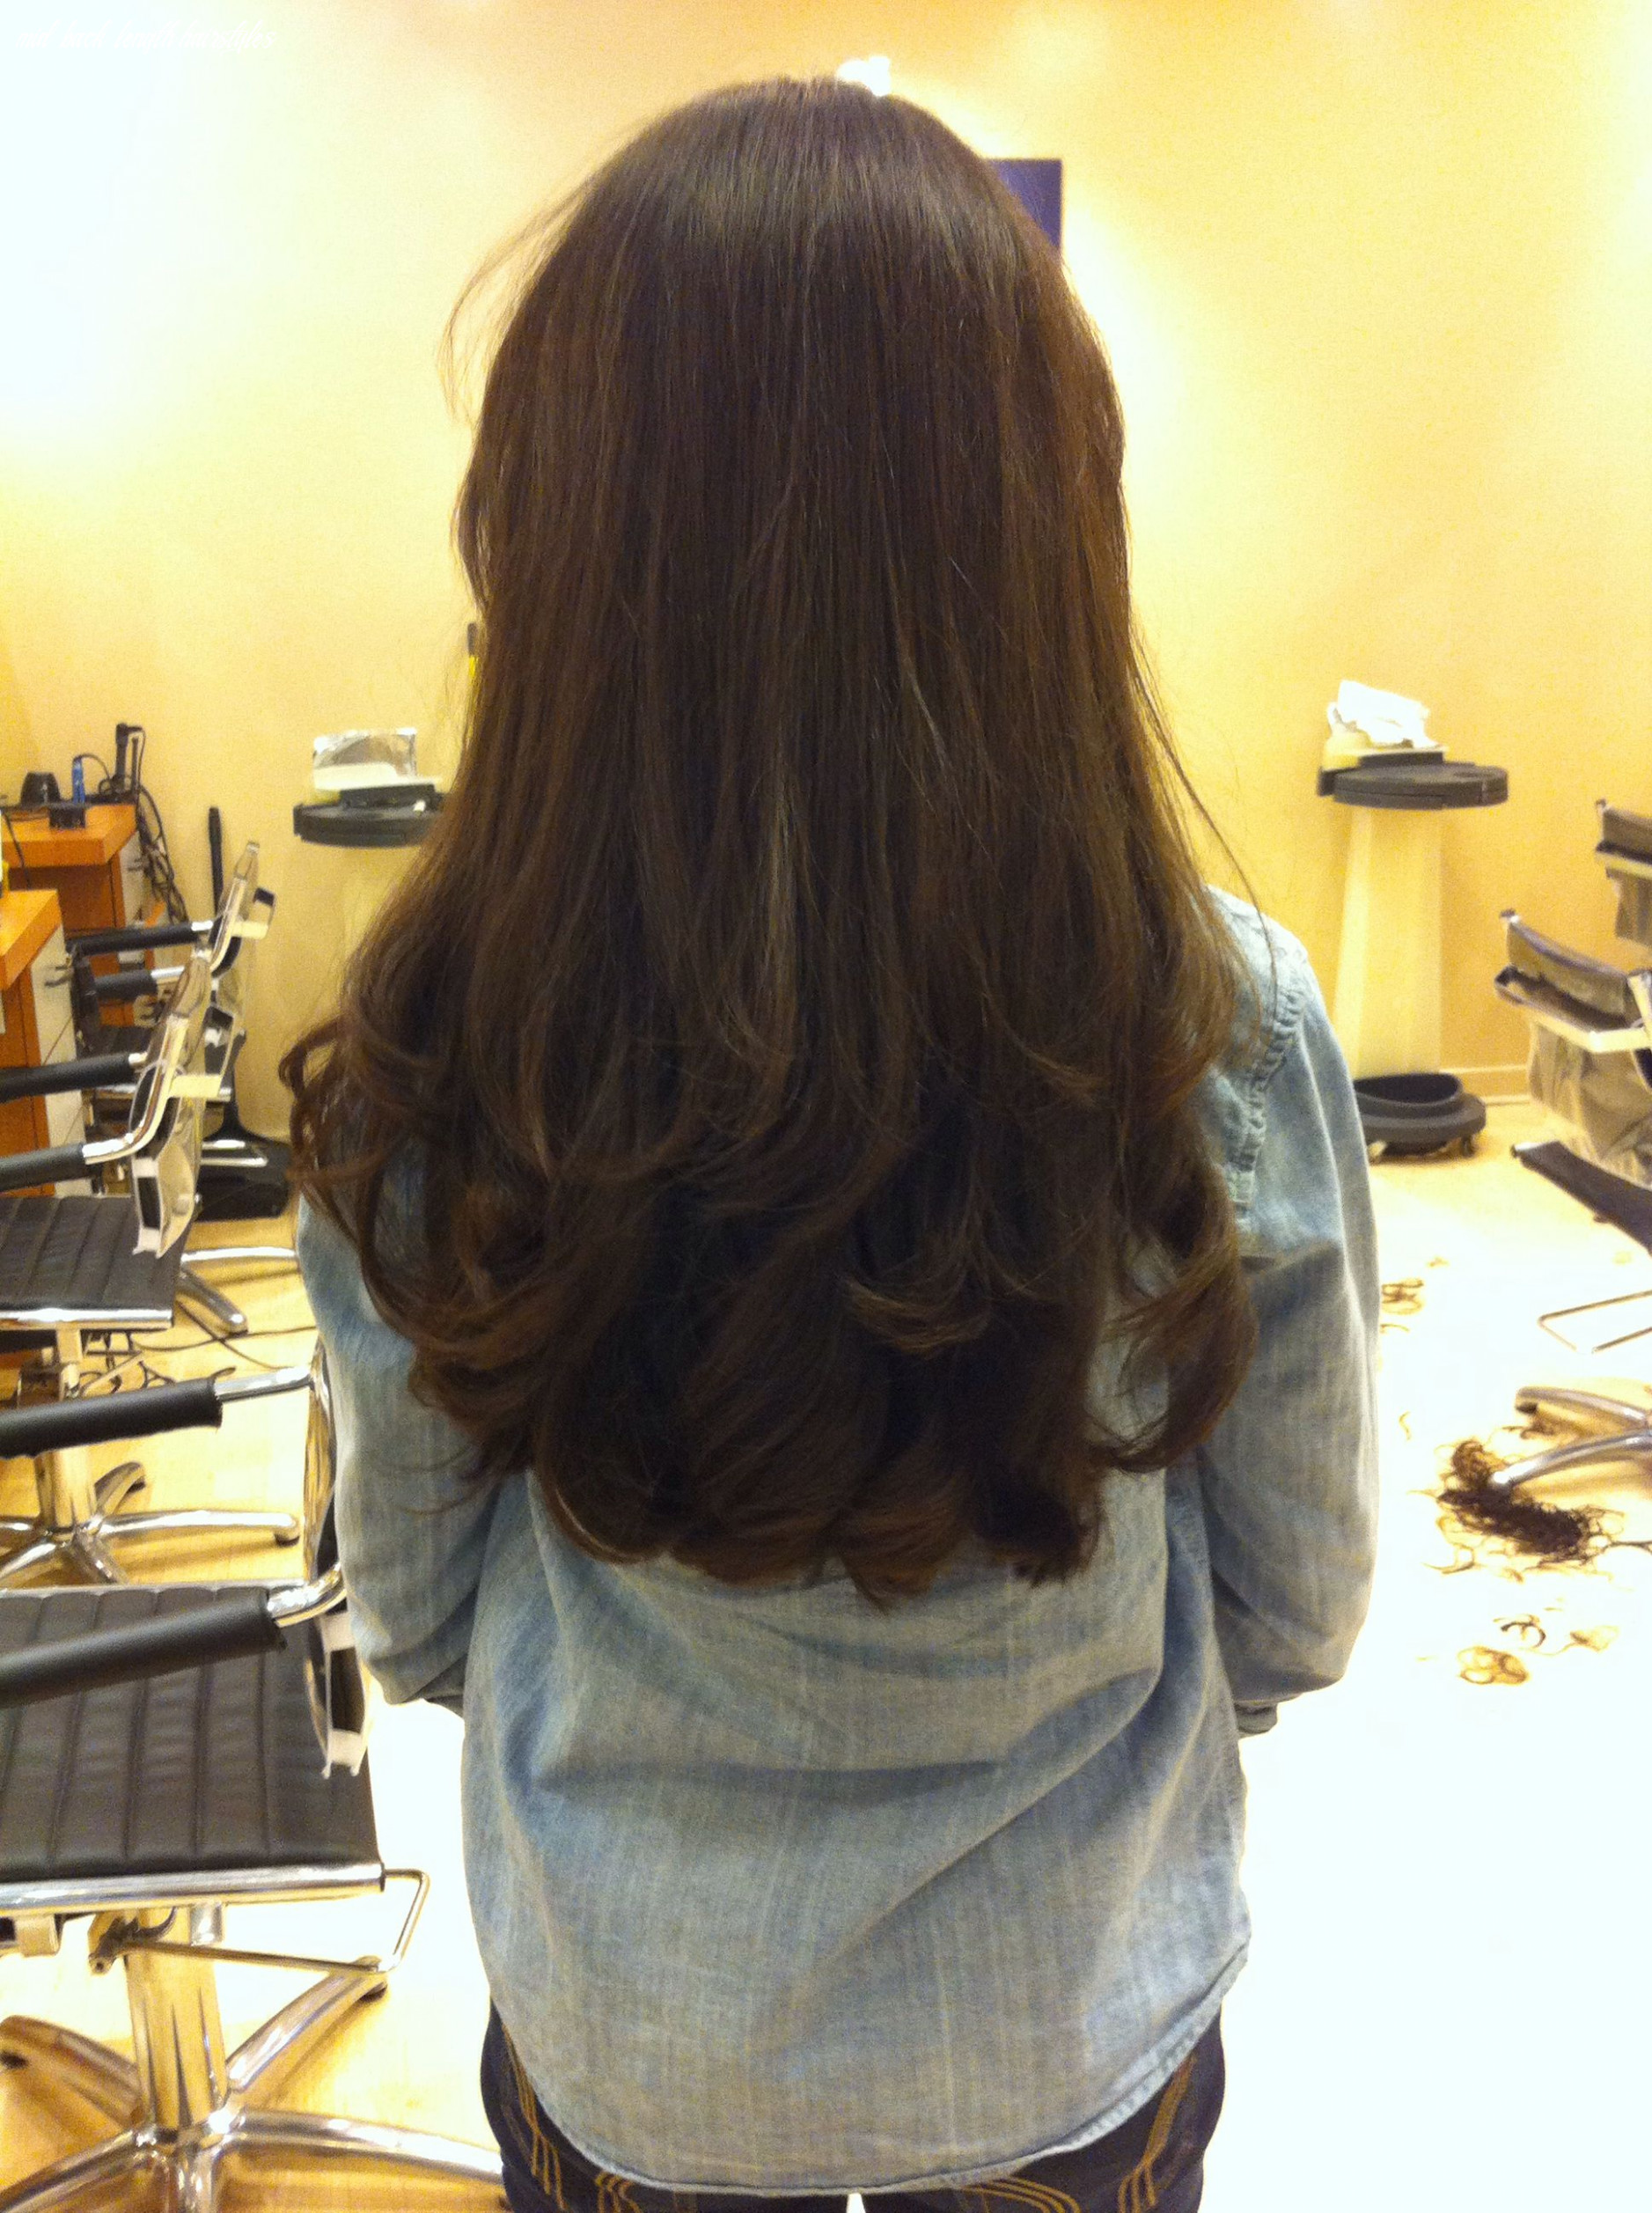 Pin on hair :) mid back length hairstyles